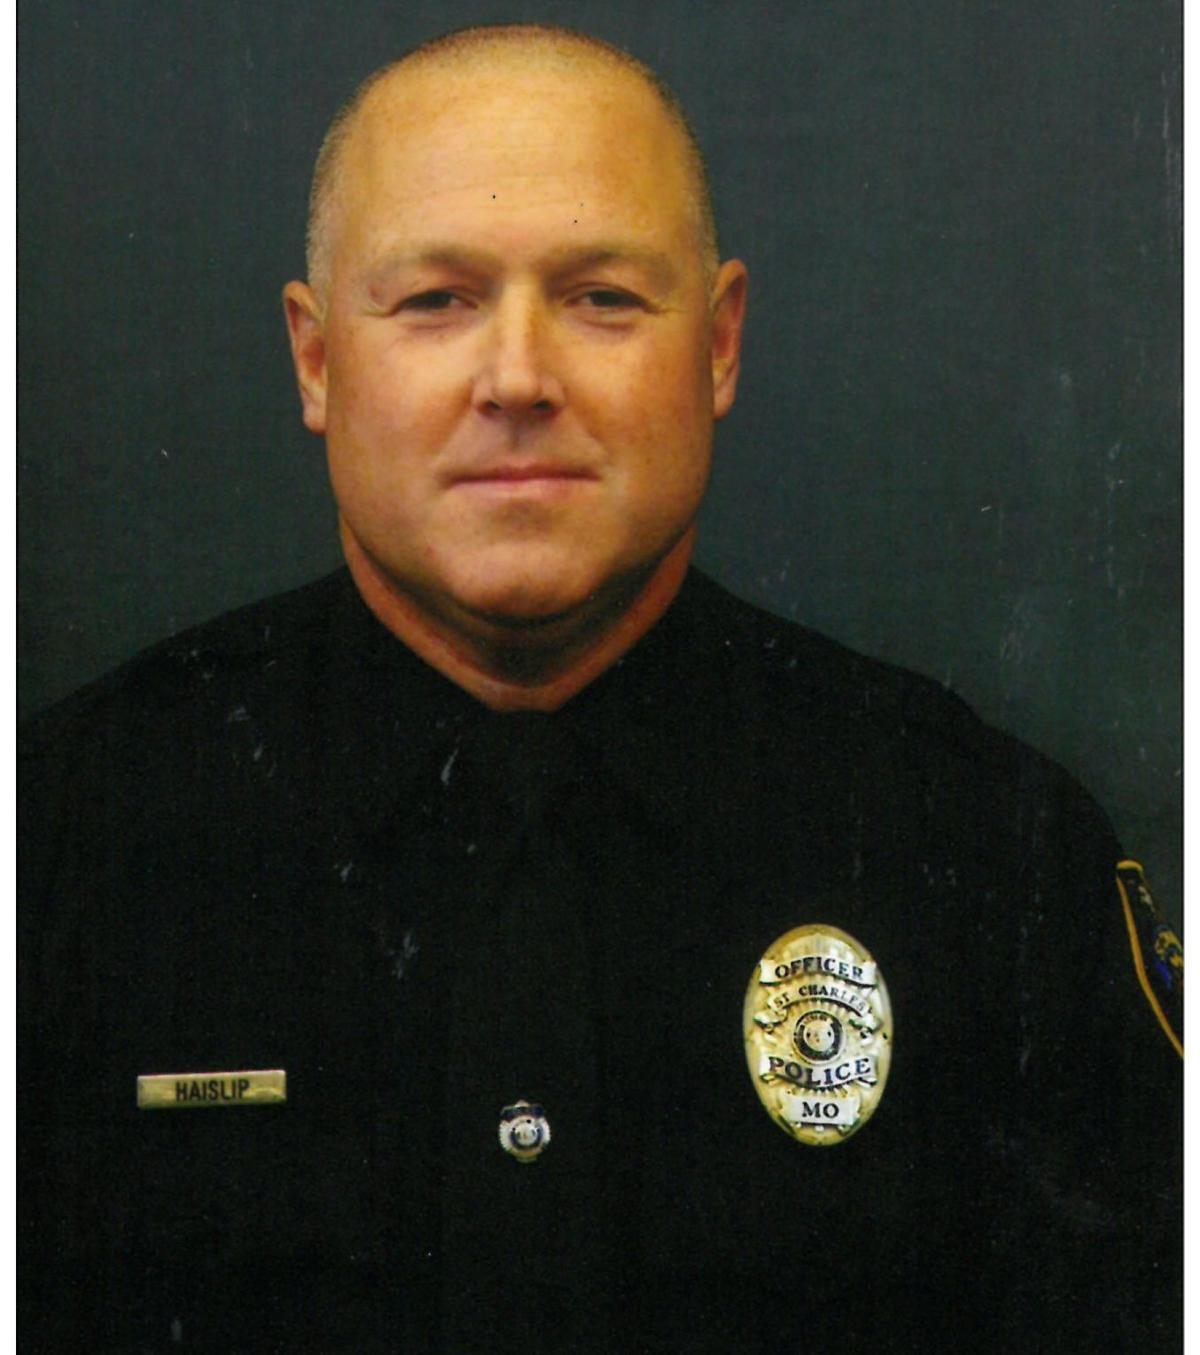 Jeffrey A. Haislip, St. Charles Police Department saved an 86-year-old man from a house fire on the night of Feb. 4, 2015